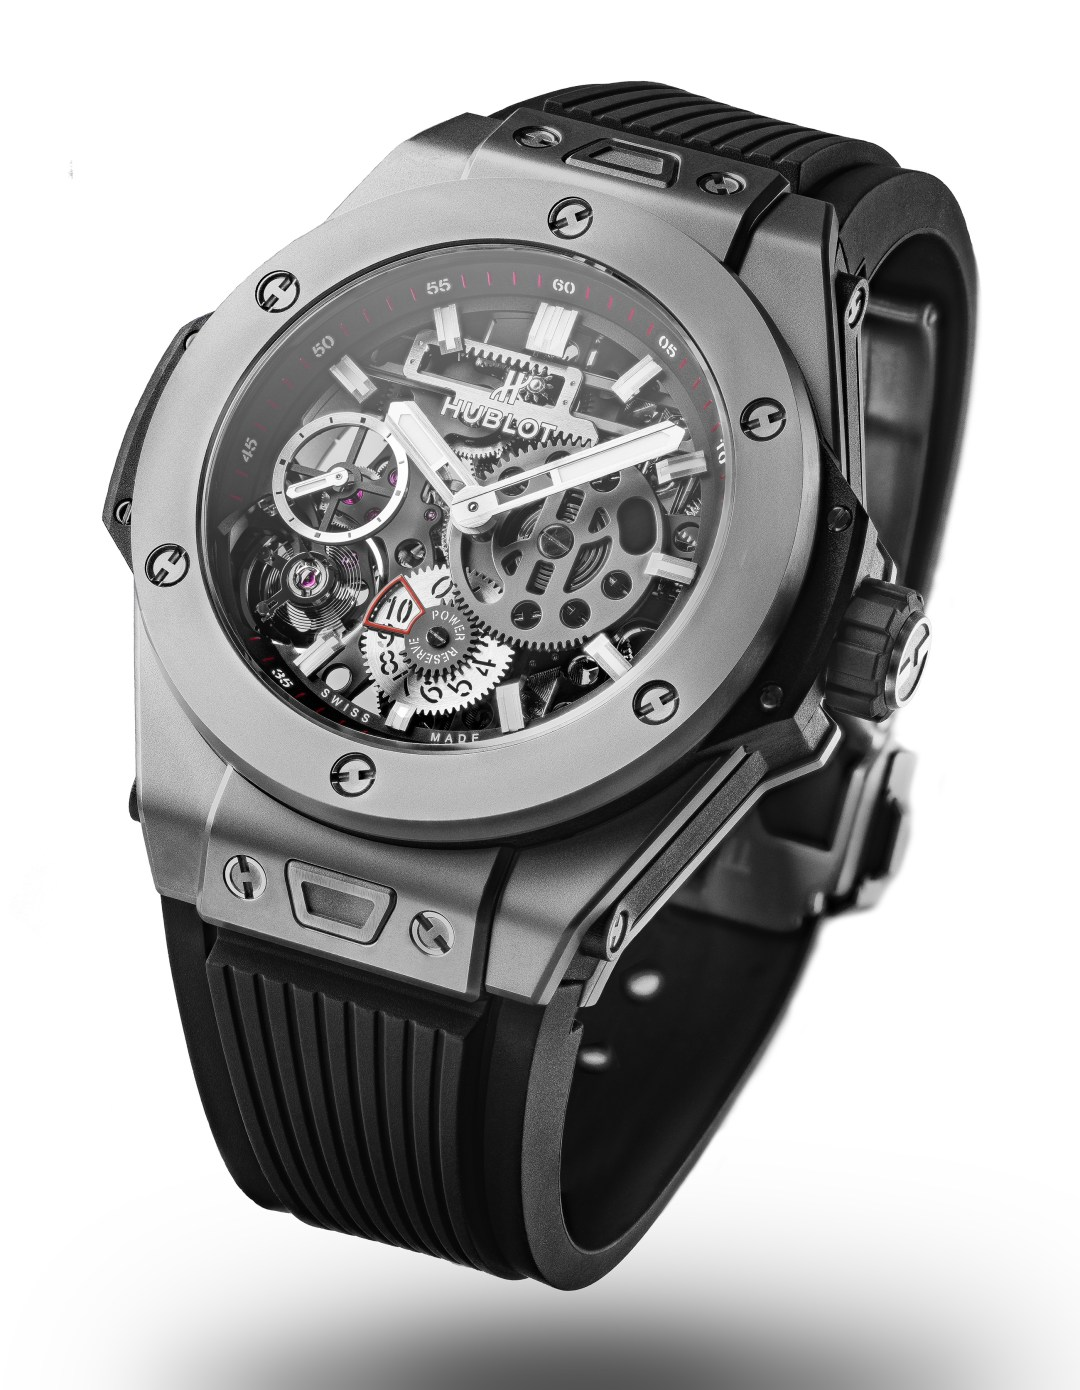 Big Bang MECA-10 Titanium copy